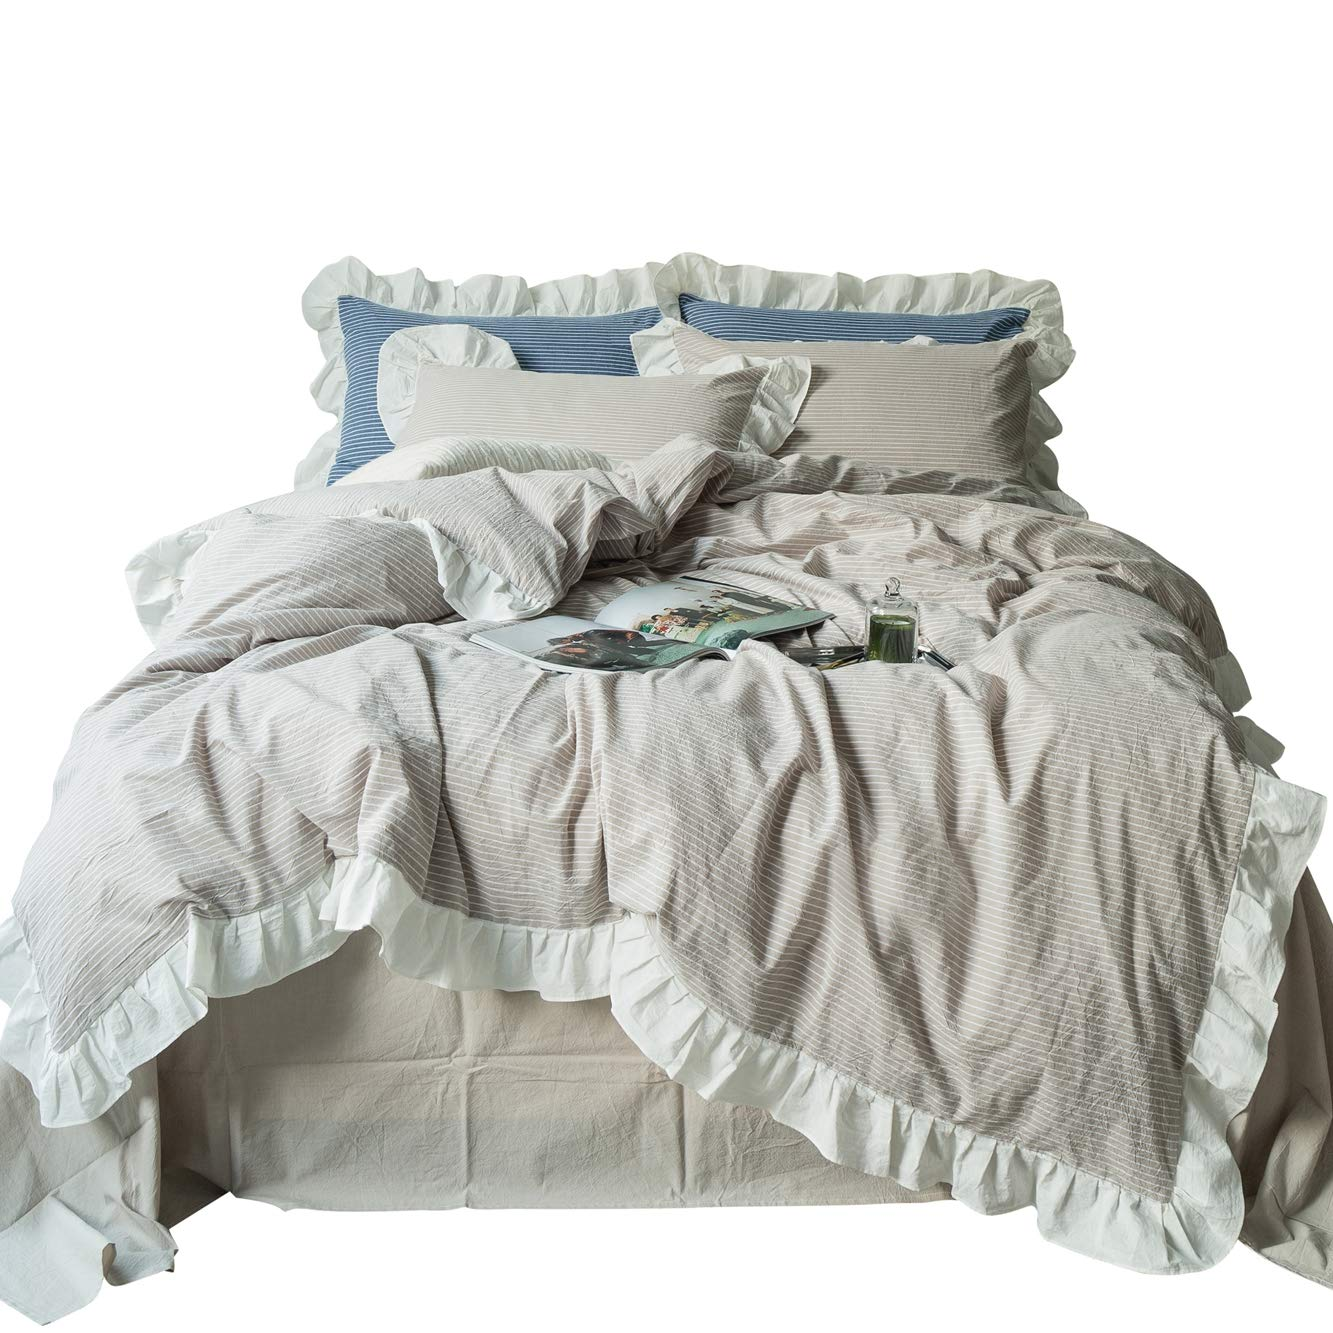 SUSYBAO 3 Pieces Vintage Ruffle Duvet Cover Set 100% Washed Cotton Queen Size Beige Striped Princess Girls Bedding with Zipper Ties 1 Rural Duvet Cover 2 Pillow Shams Luxury Quality Soft Breathable